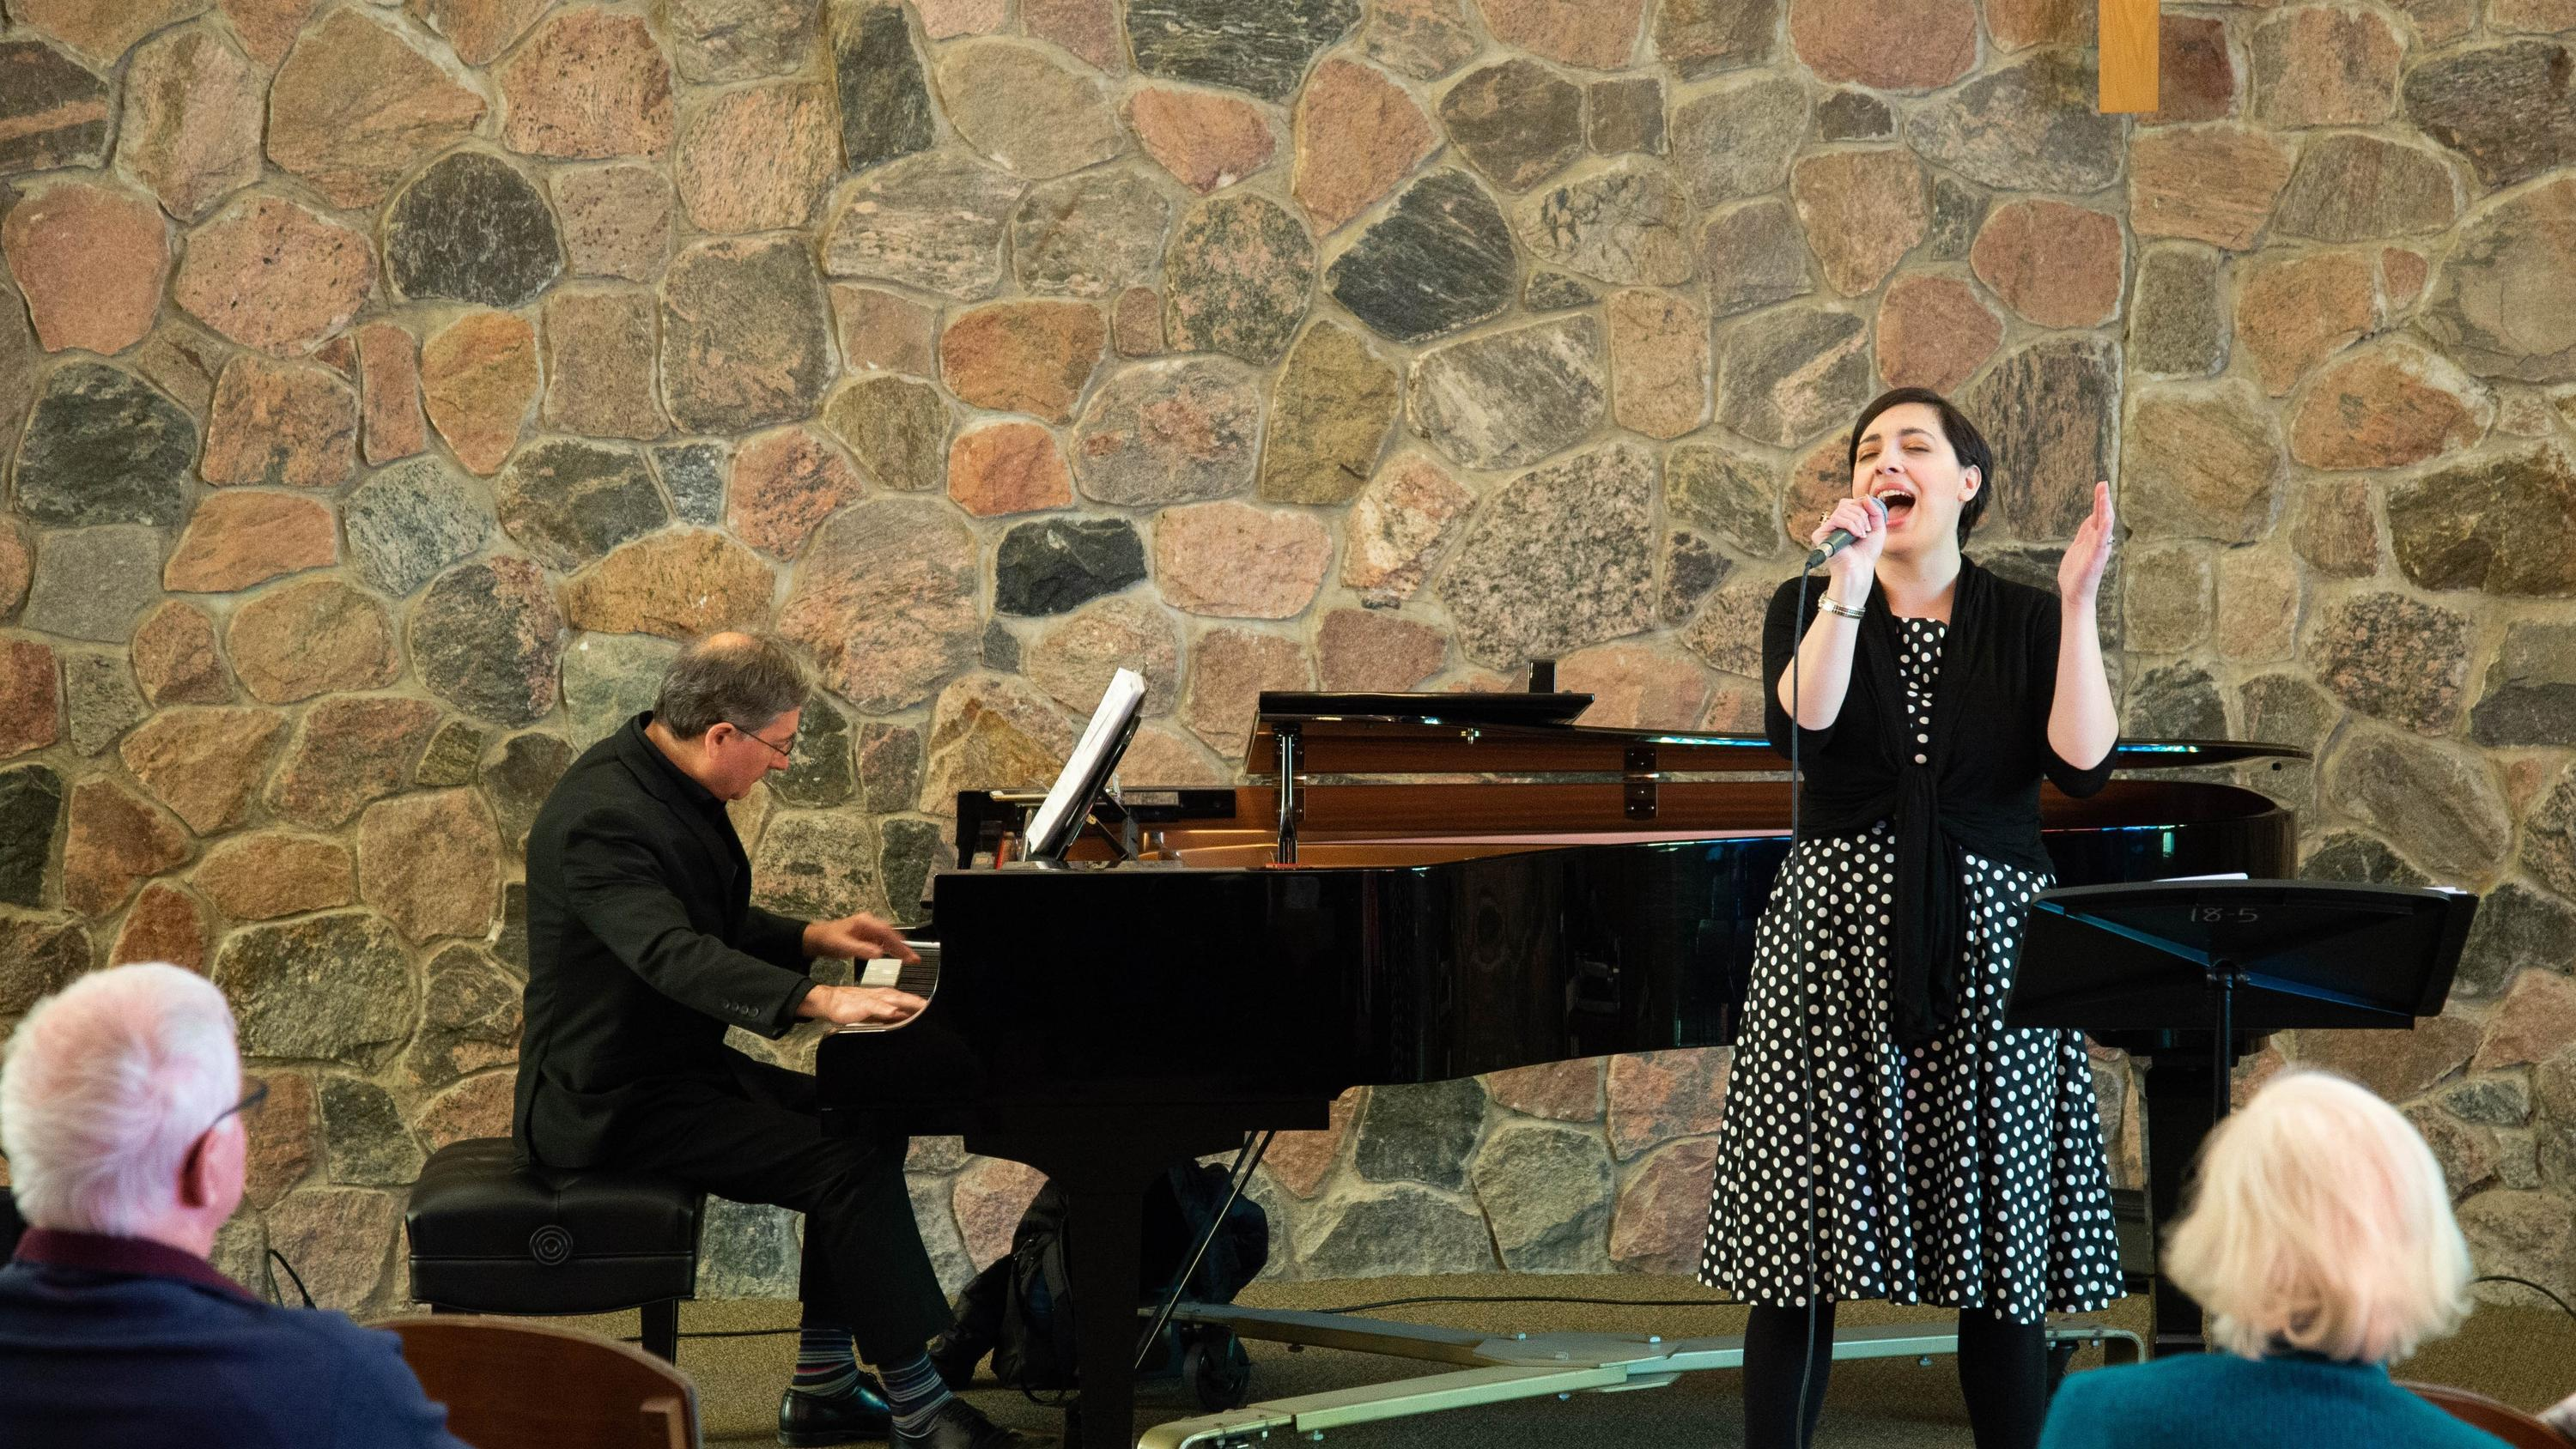 Mary-Catherine Pazzano sings while Paul Stouffer plays piano